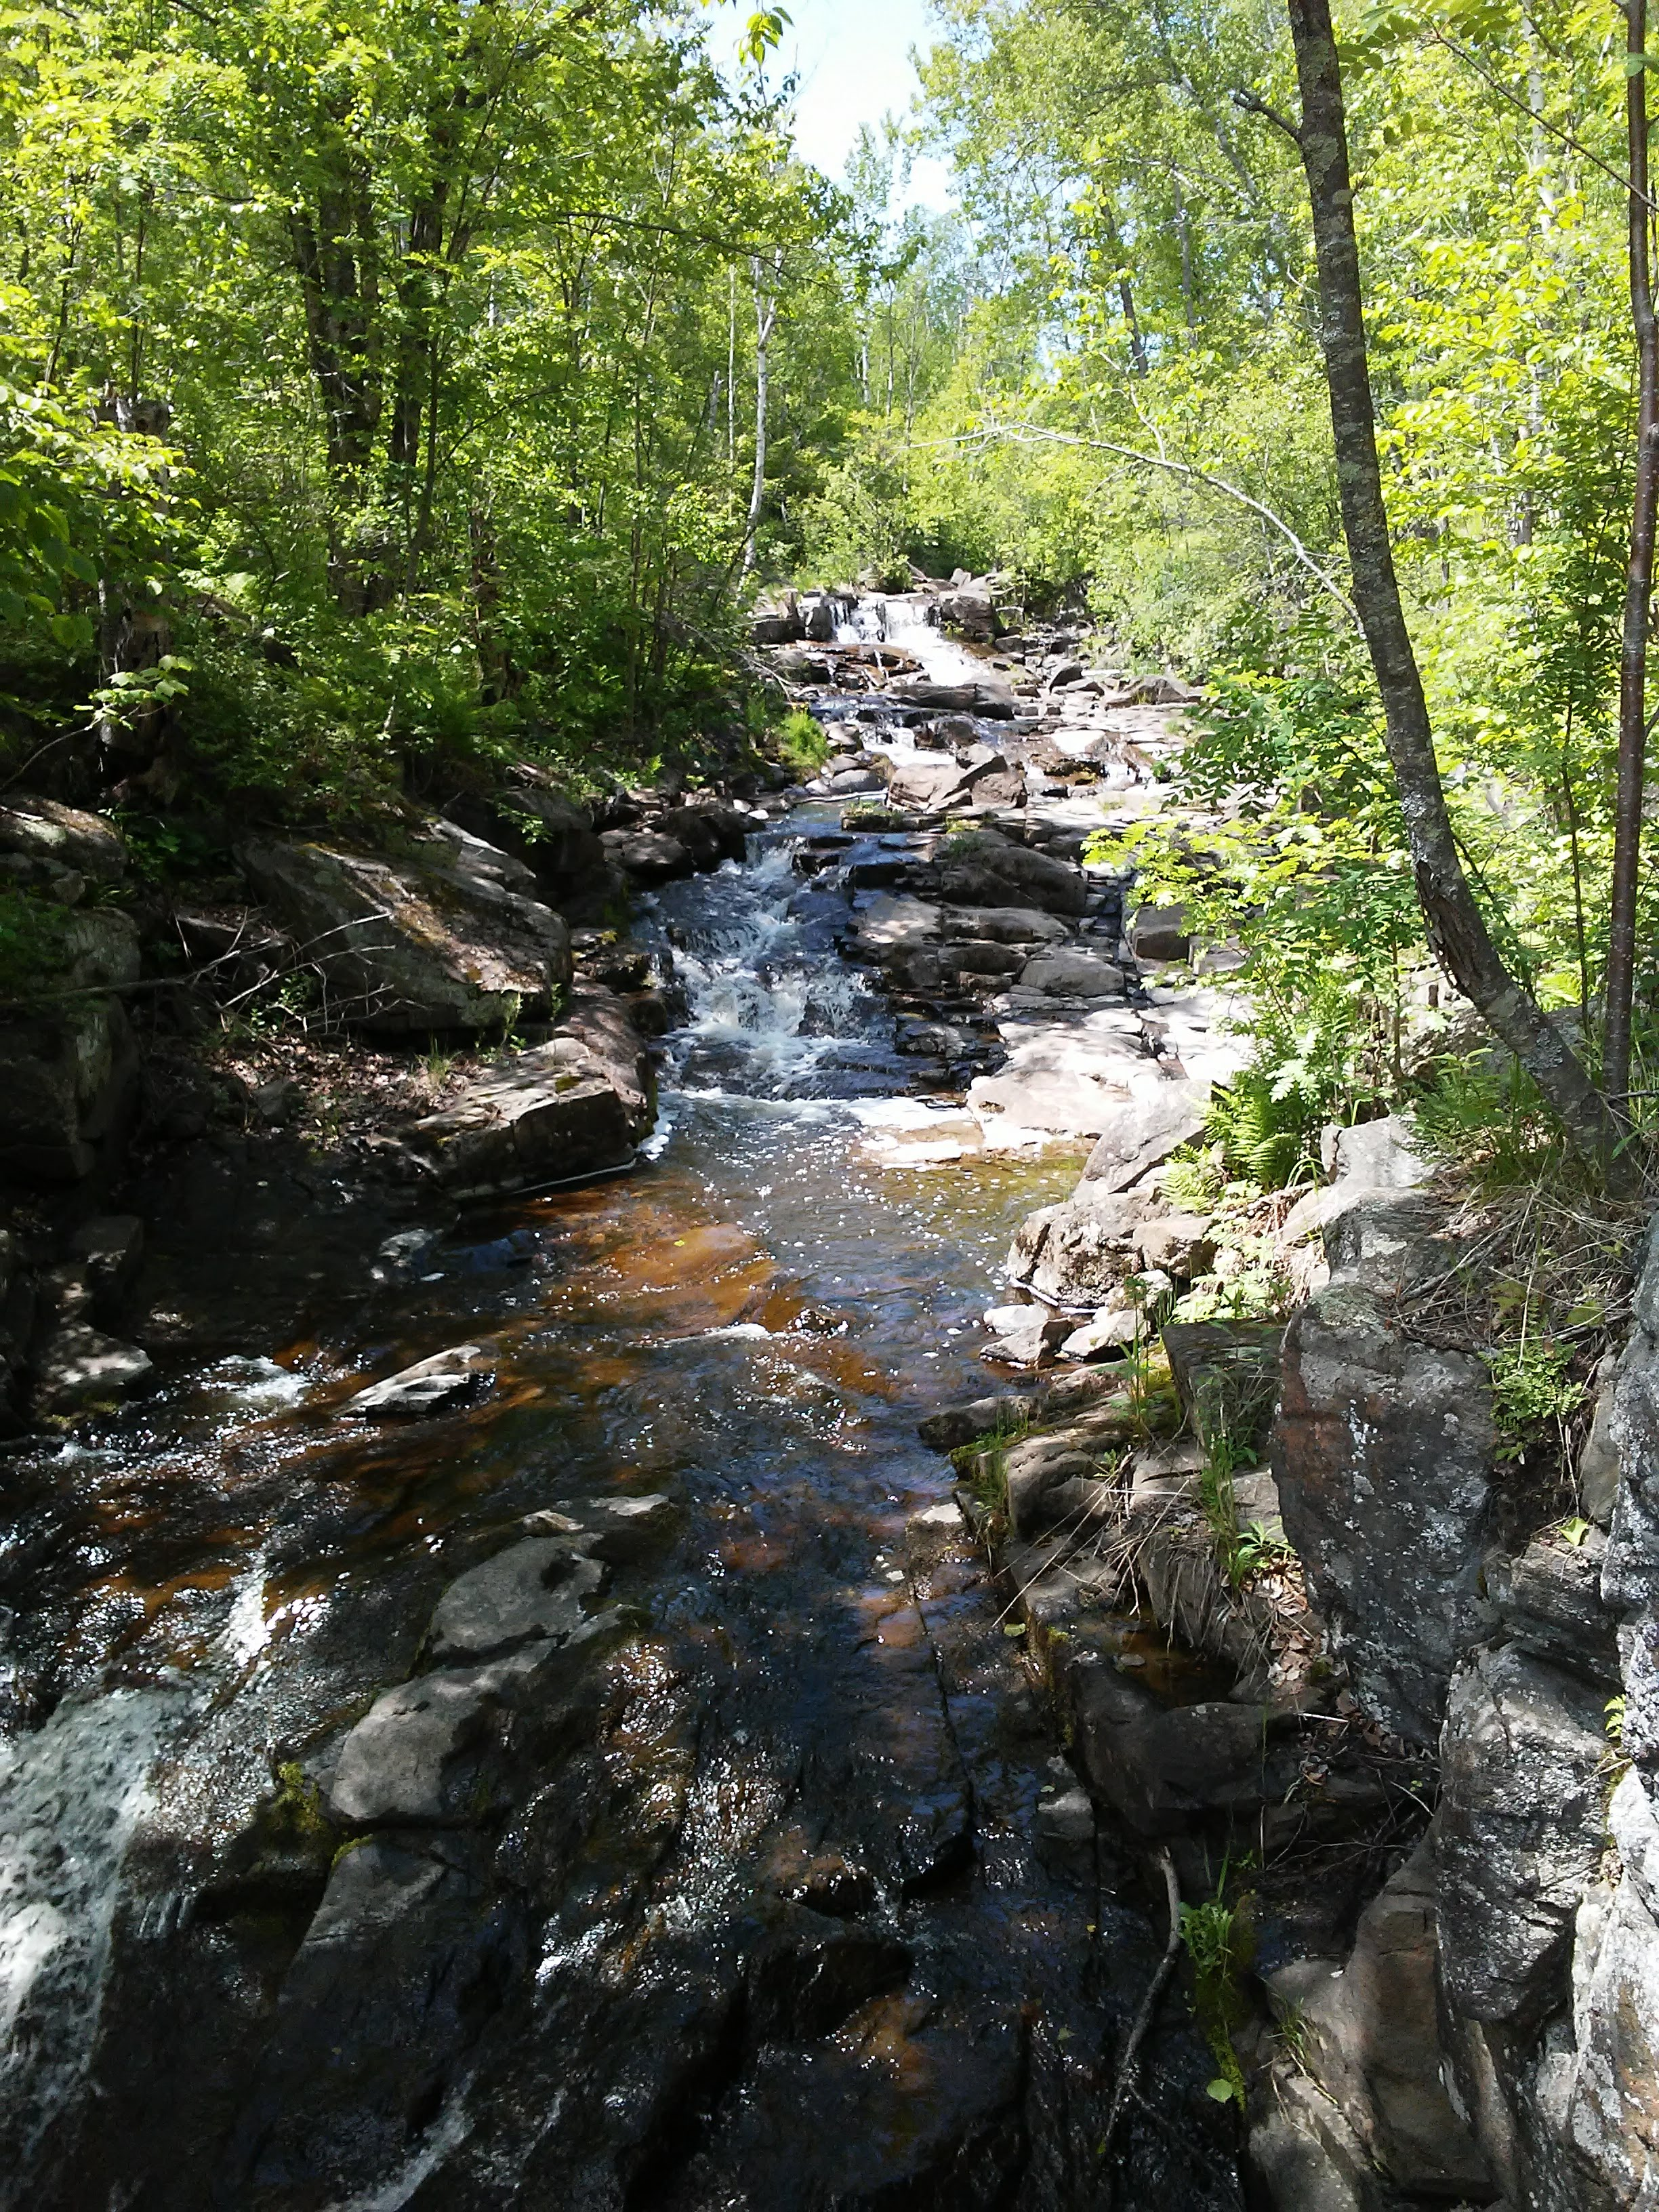 Keene Creek in Duluth, Minnesota